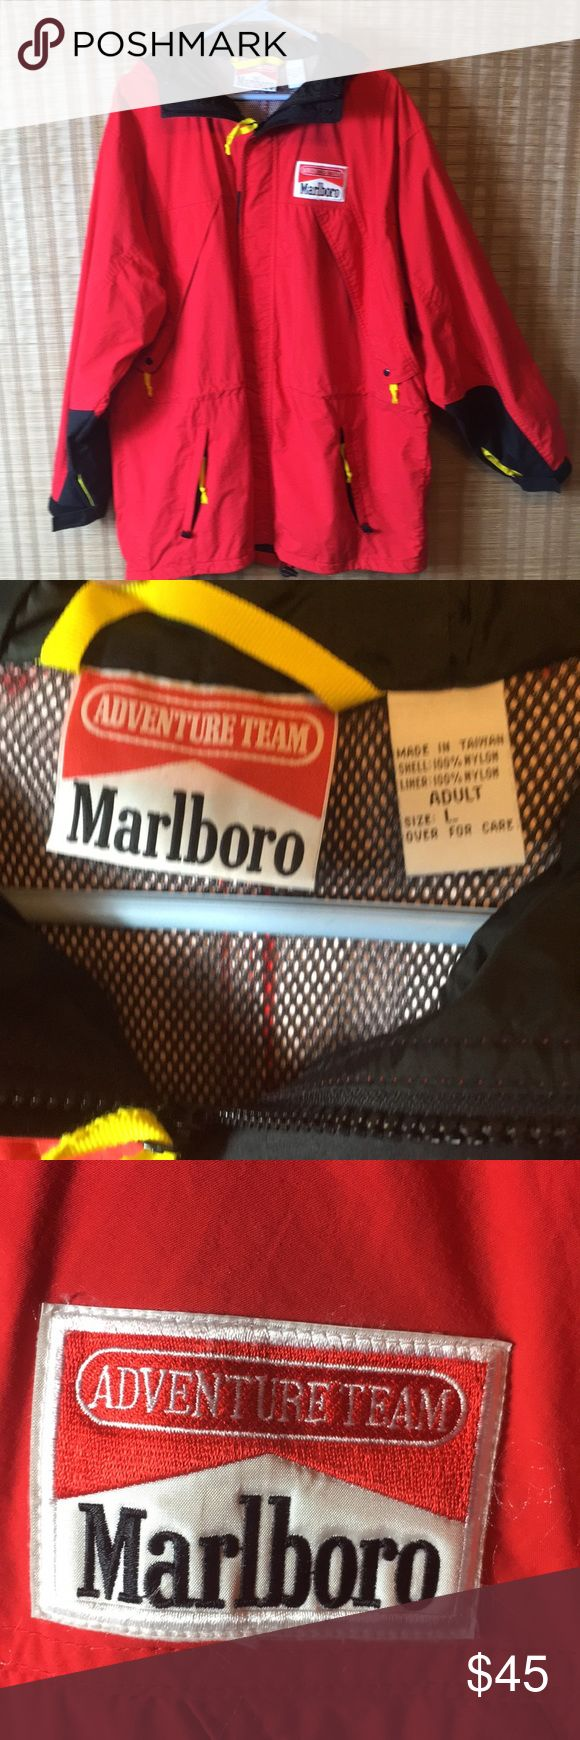 Marlboro Vintage 90's Red Windbreaker Jacket Size L x great vintage condition x zippers all work with lots of pockets x drawstring at waist x clean net lining on inside of Jacket x hood x Velcro at sleeves for adjustment x logo on front ADVENTURE TEAM x no rips but small mark on sleeve x see photo Marlboro Jackets & Coats